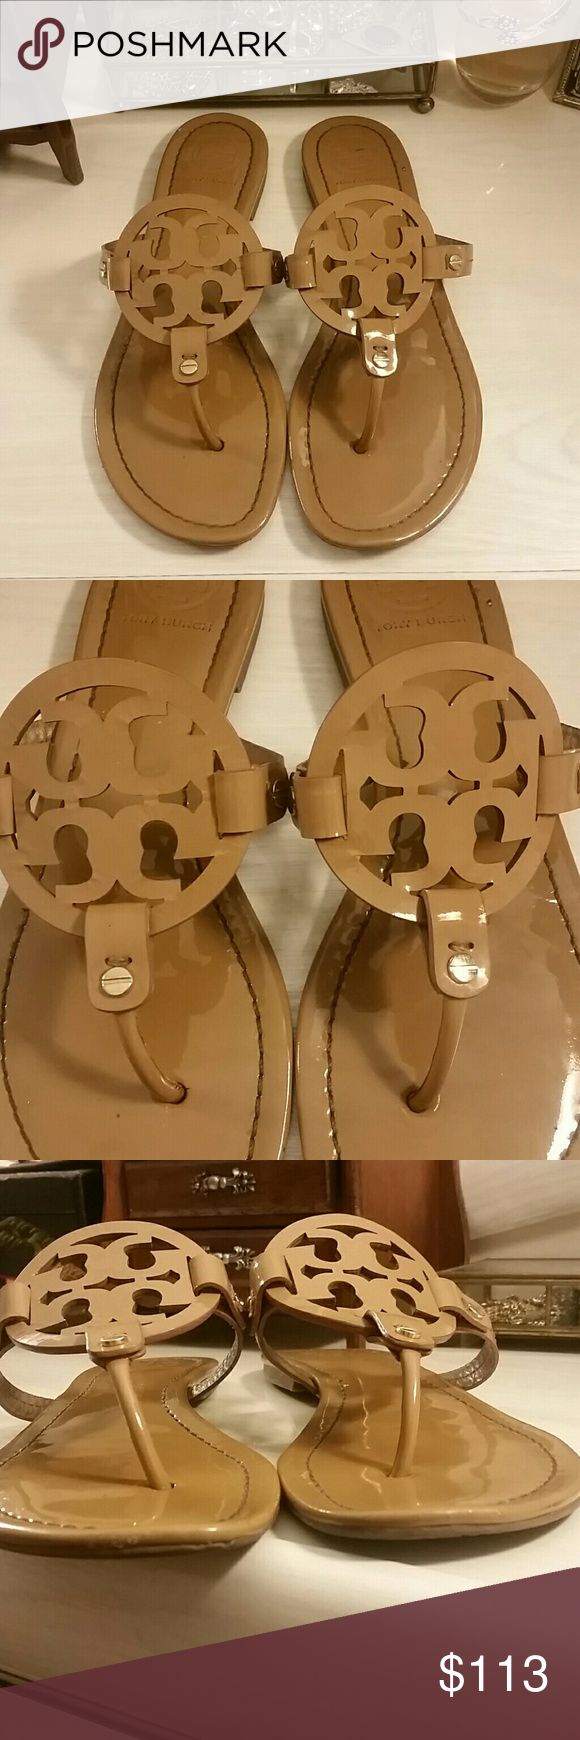 Tory Burch Miller Sandals in Patent Sand ------PRICE FIRM ------- Preowned Tory Burch Miller Sandals in Patent Sand.  Wear to fronts, footbed, heels, soles.  Size 9.5 A measument was taken for you to compare to a sandal you already own to insure an accurate fit.  Just in time for vacation 🌞 or rush 📚.   No box/dustbag.  *No trades/holds,  thank you* -------PRICE FIRM------ Tory Burch Shoes Sandals